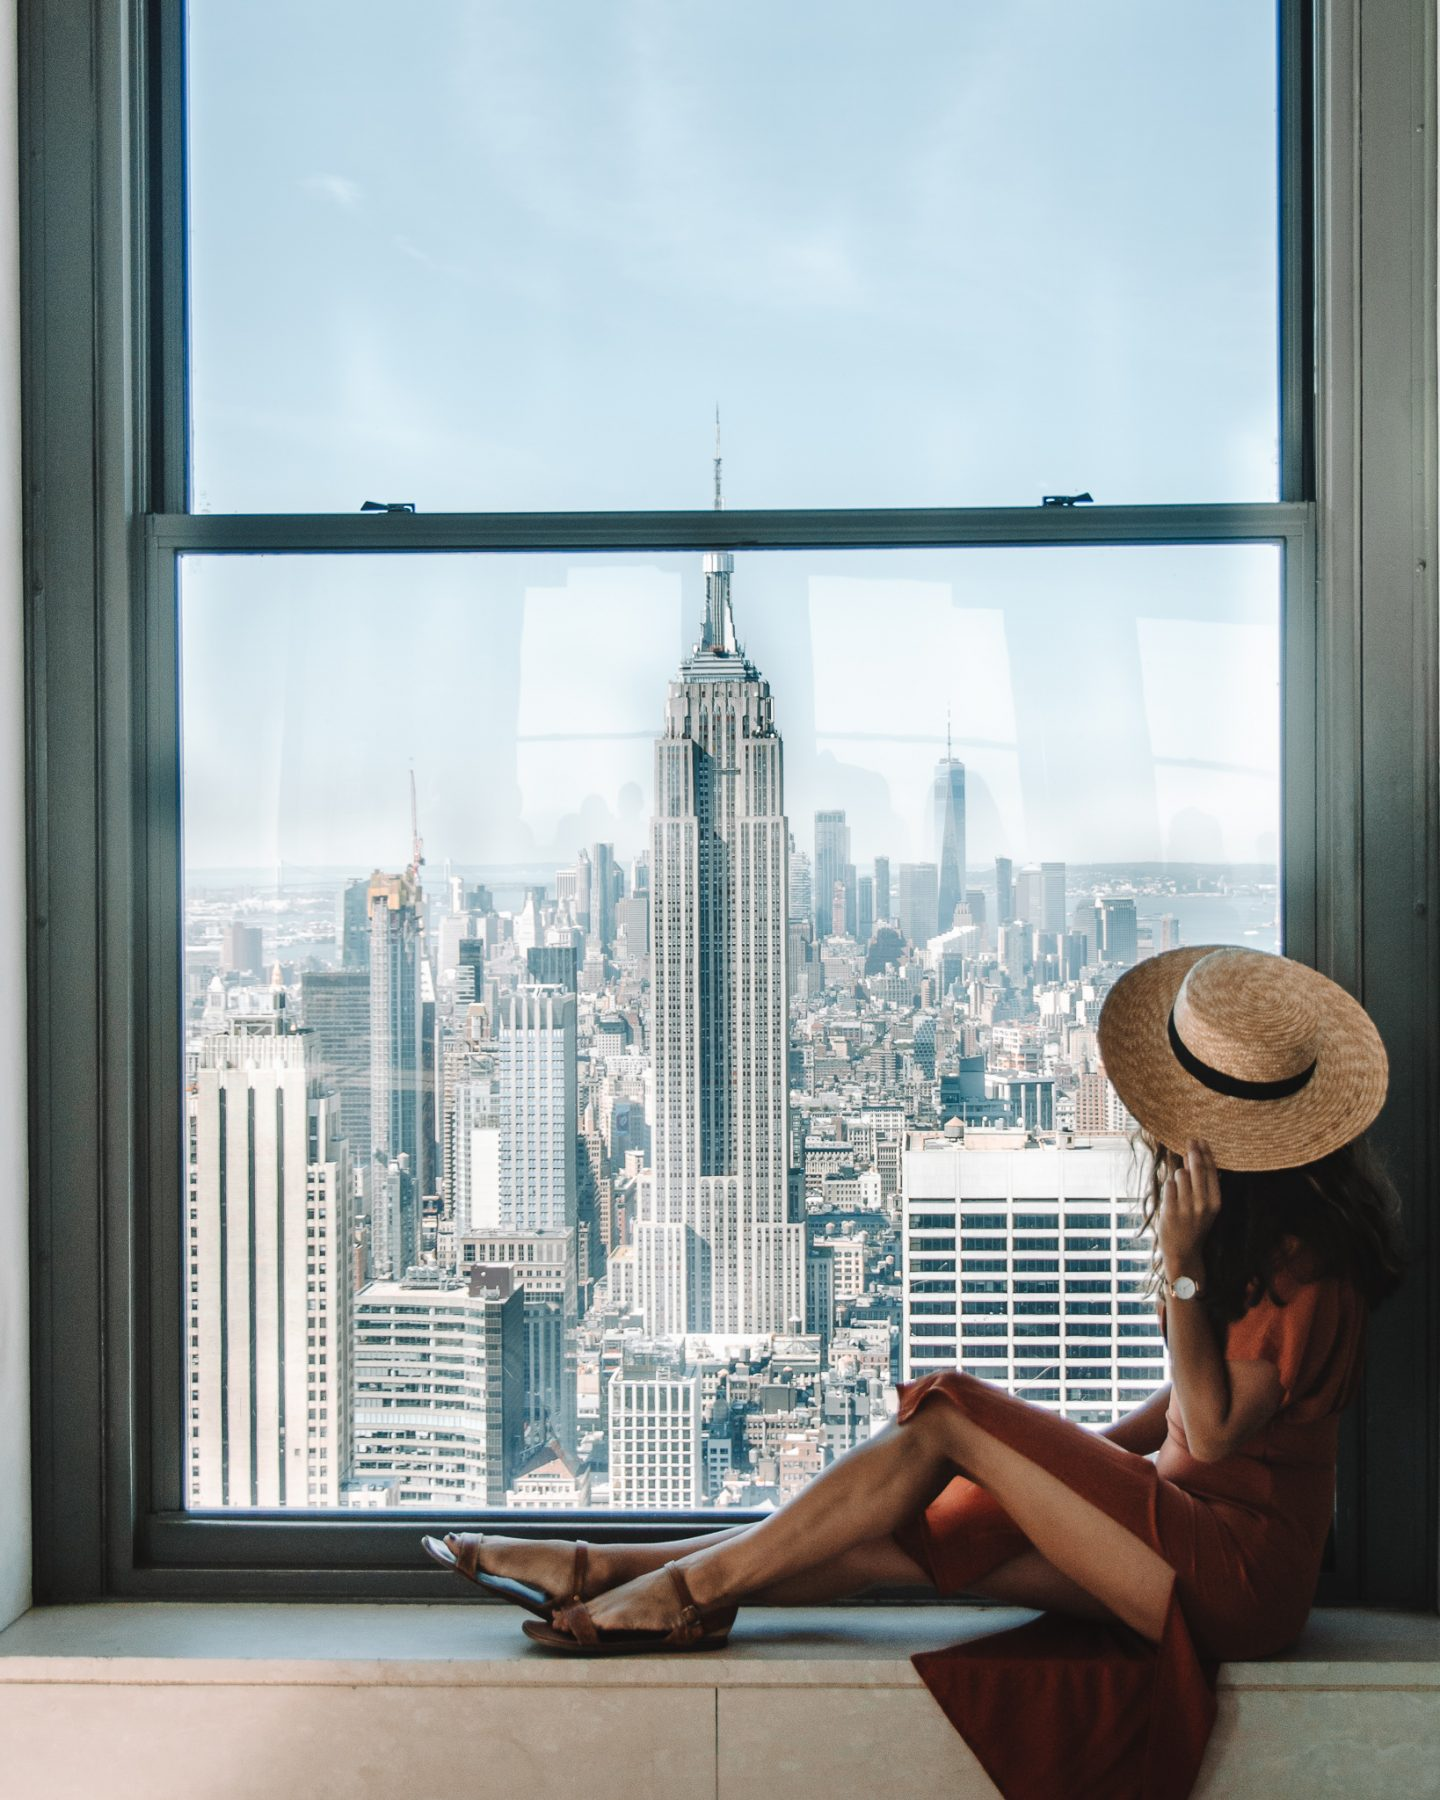 A girl in an orange dress sitting in a window at Top of the Rock